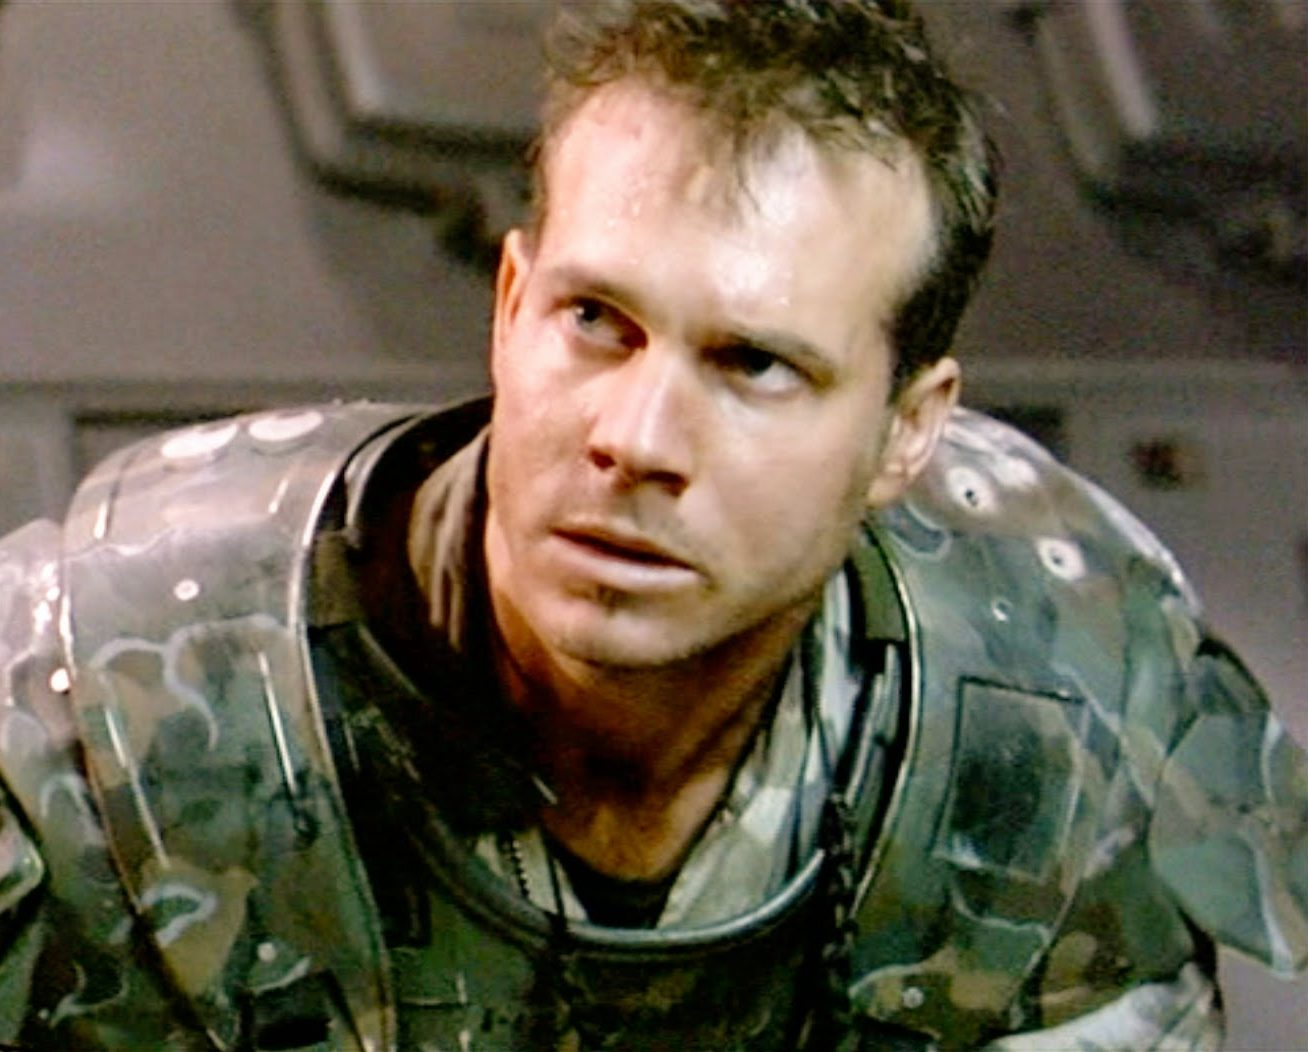 aliens 274pyxurz e1622449900338 20 Things You Never Knew About Bill Paxton